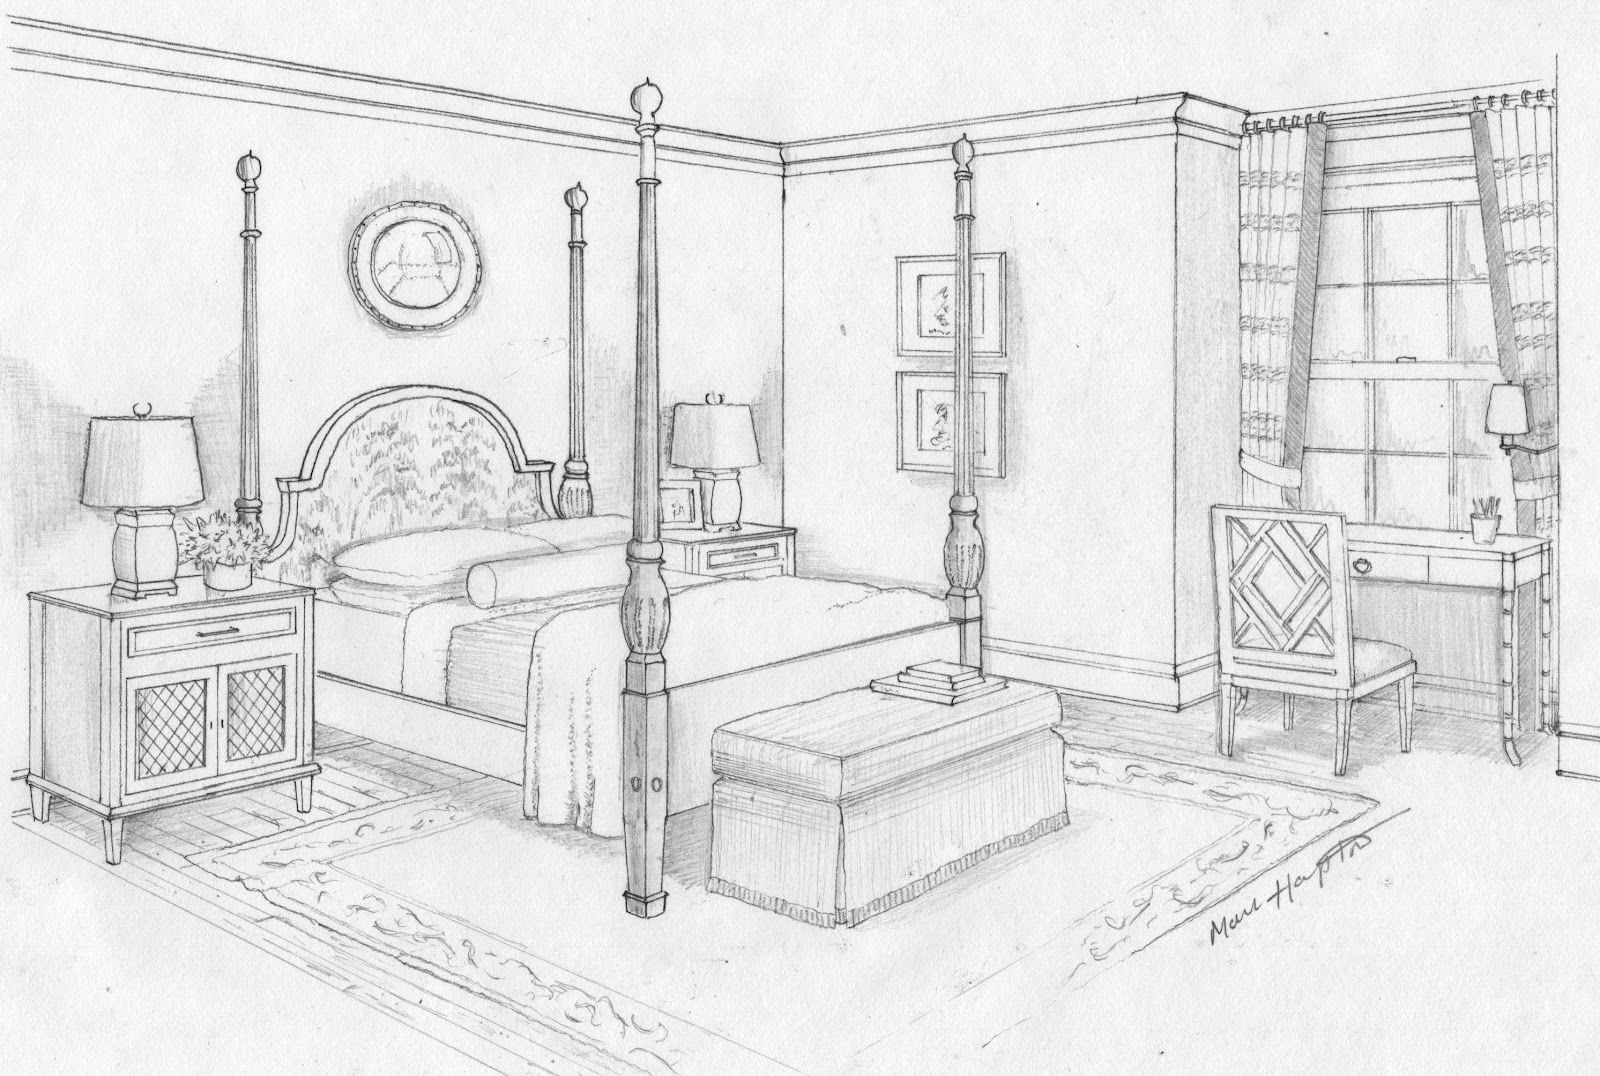 Living room drawing design - Dream Bedroom Sketch Bedroom Ideas Pictures Manga Drawingroom